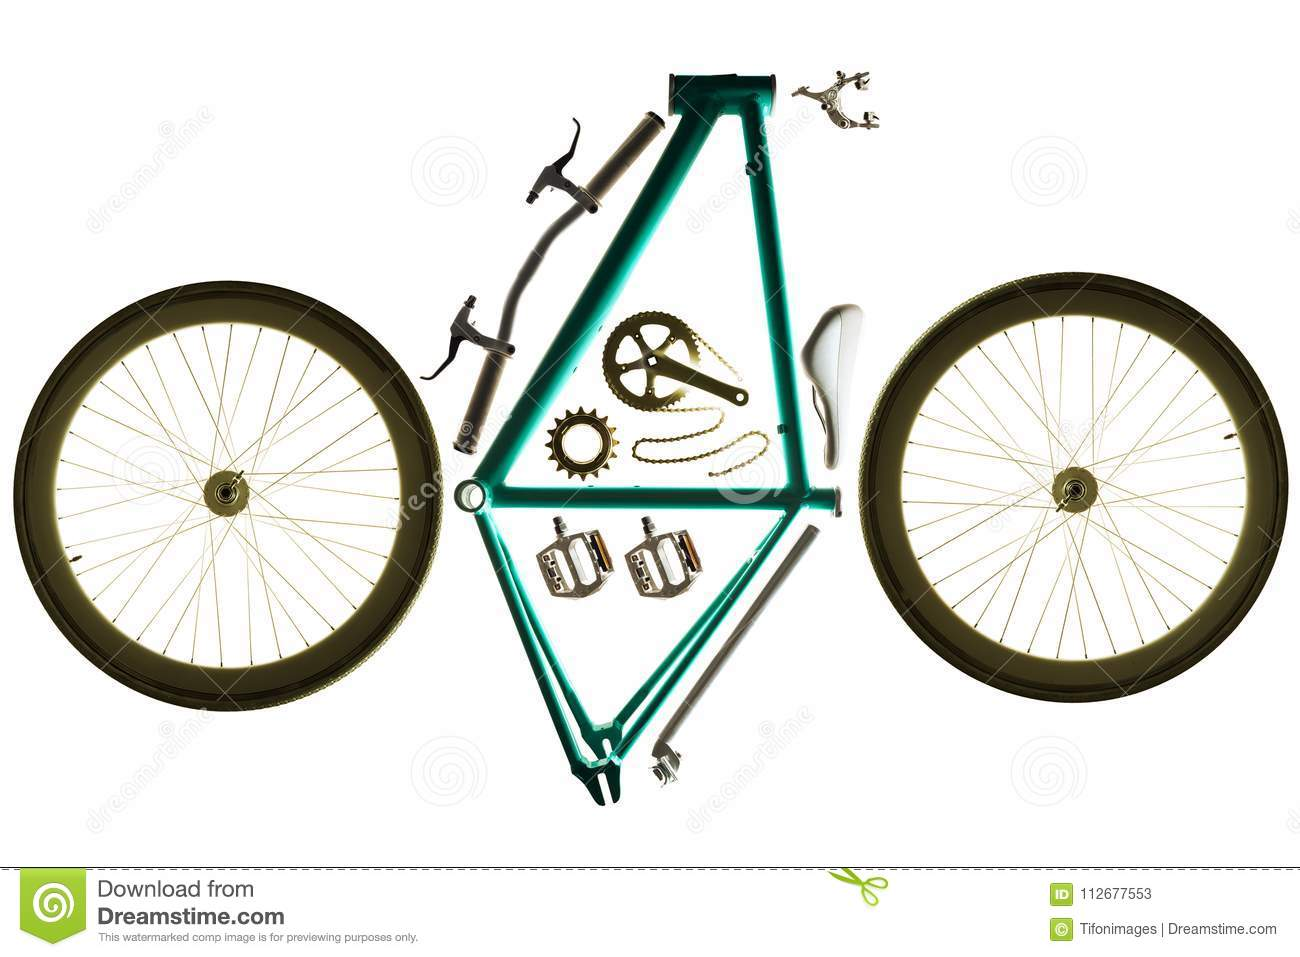 Bicycle Parts For Assembling A Custom Bike Stock Image - Image of